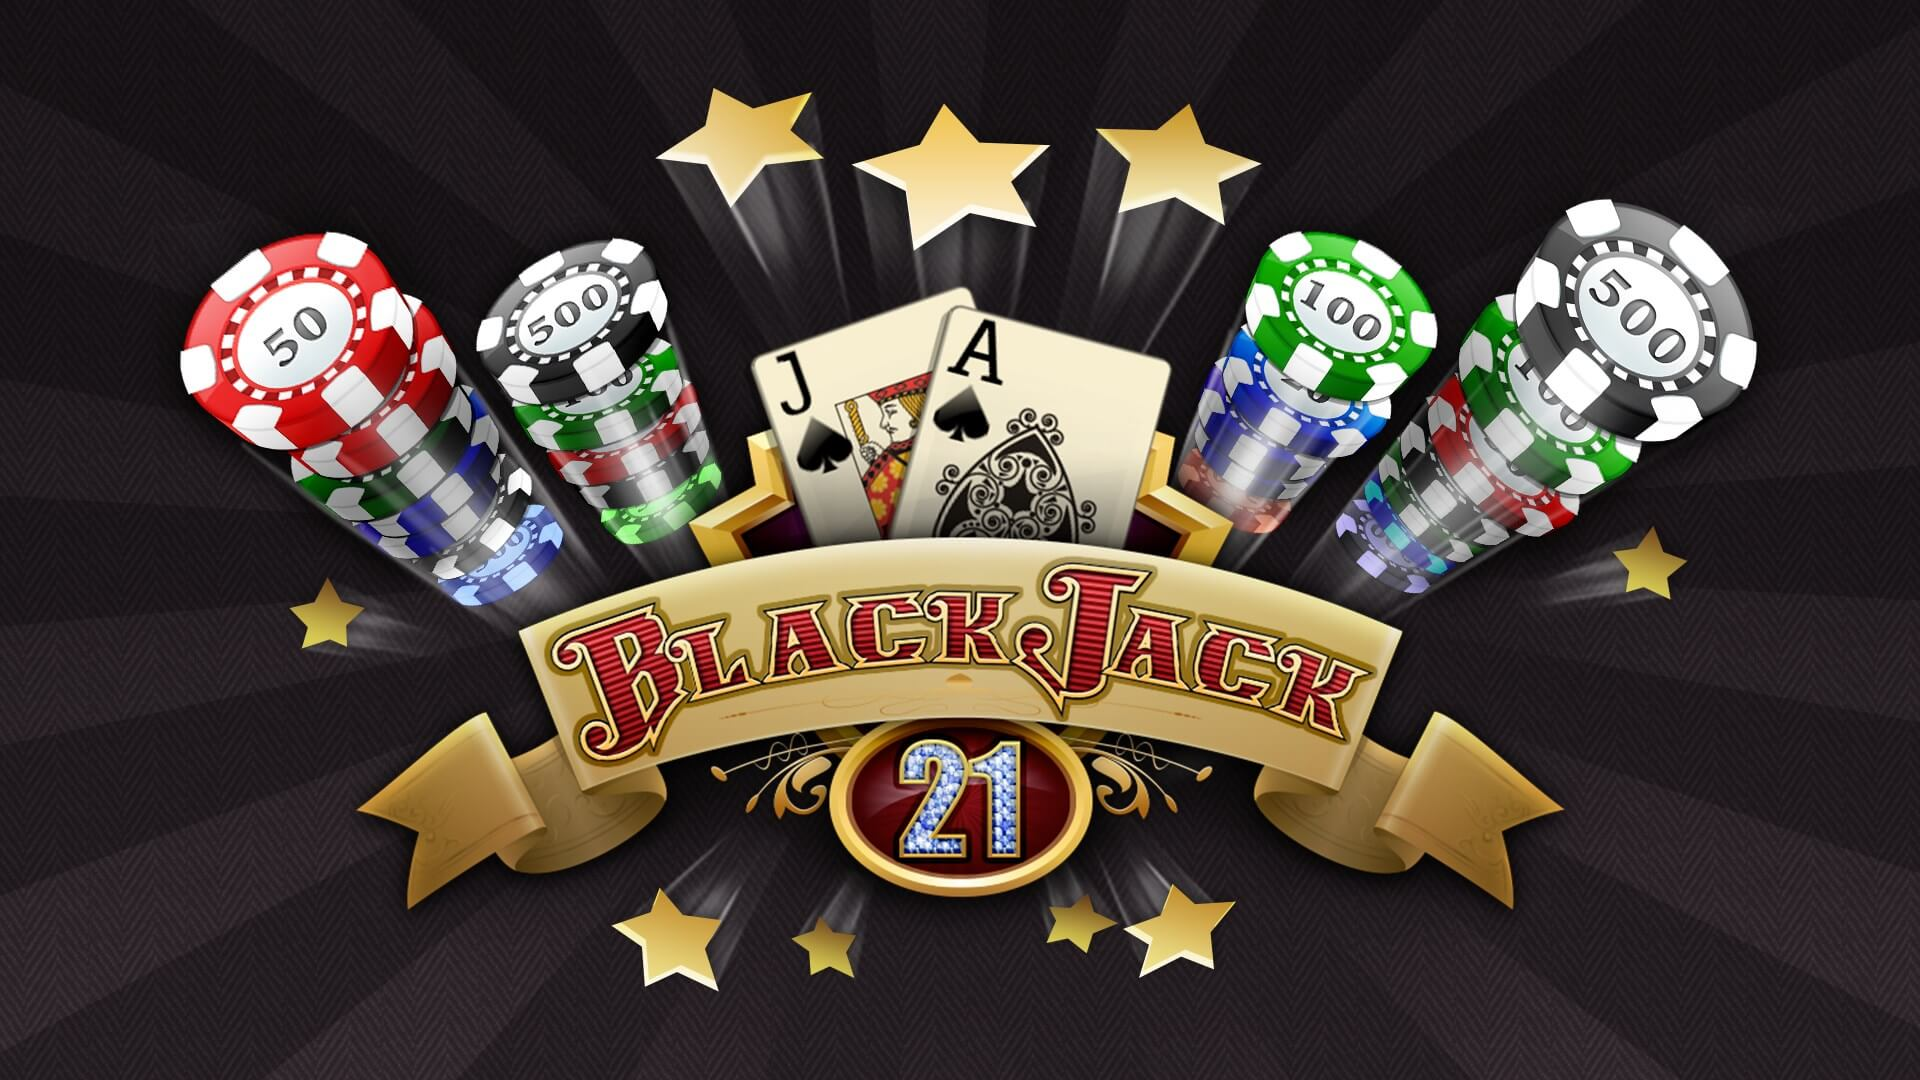 What do you need to know before playing blackjack online?